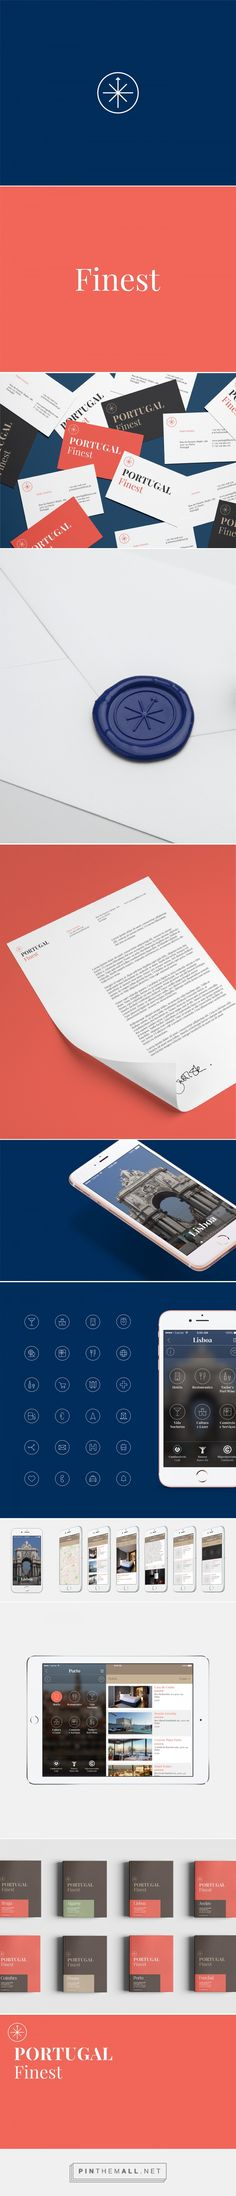 Portugal Finest on Behance